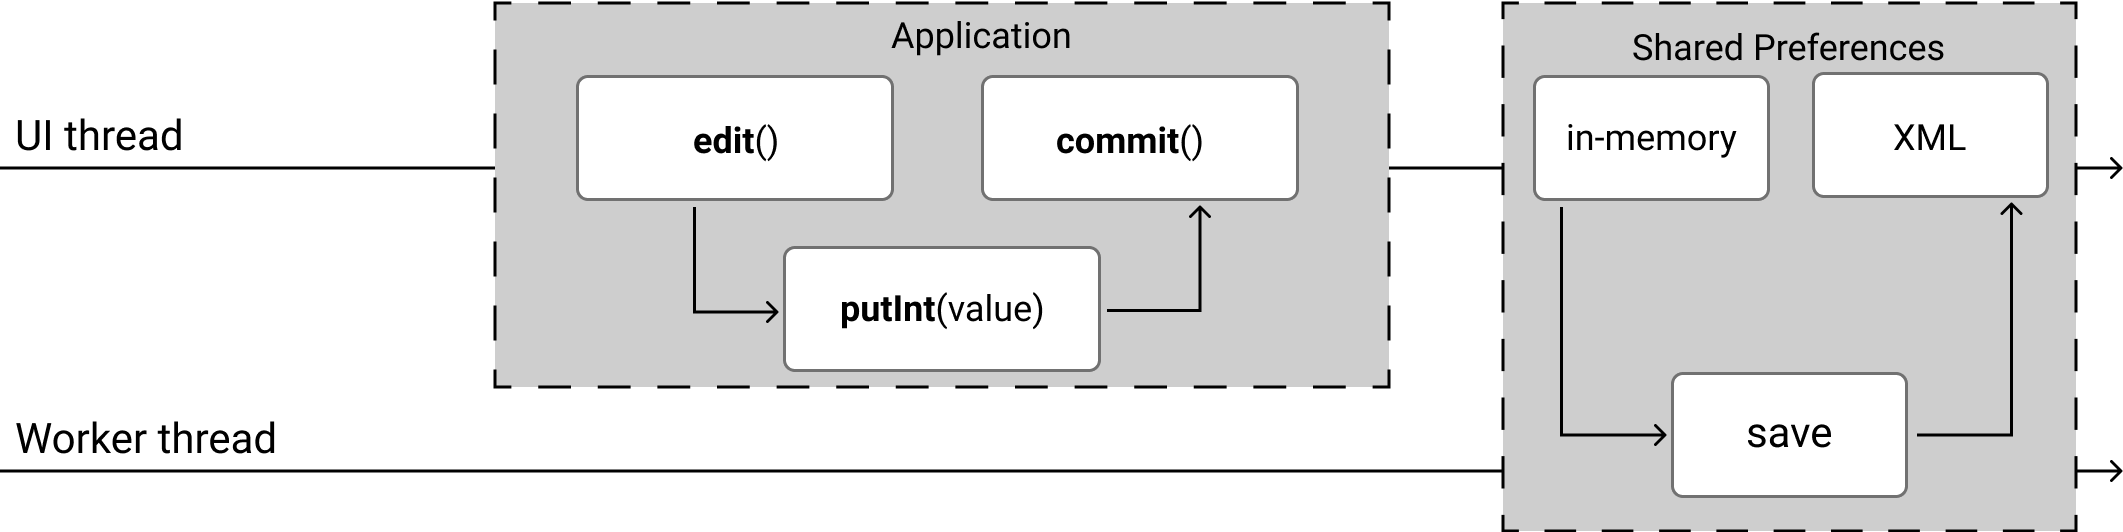 apply() function